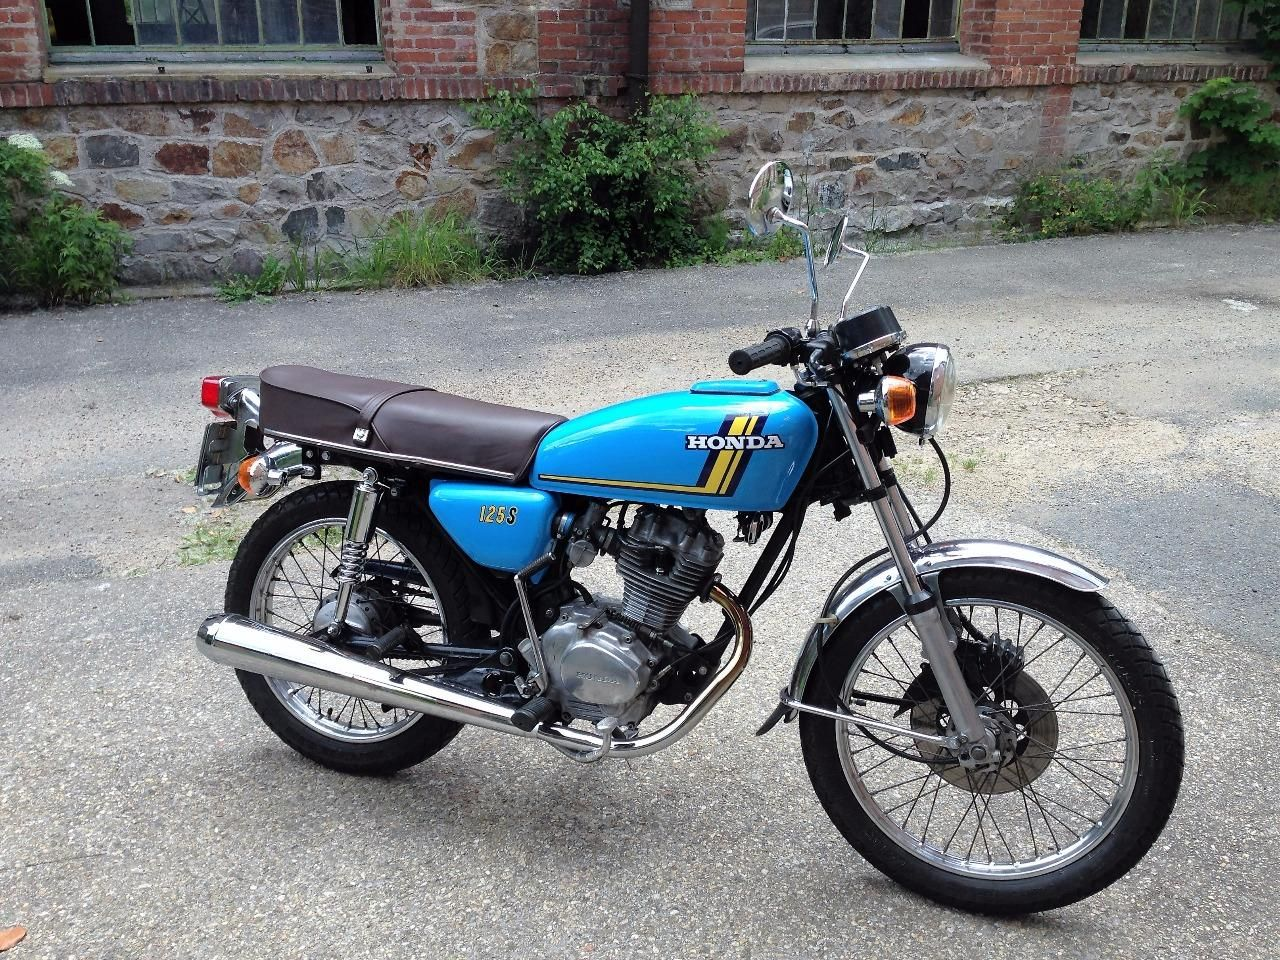 dad 39 s motorcycle honda 125 cb s3 1976 bikes with motors. Black Bedroom Furniture Sets. Home Design Ideas